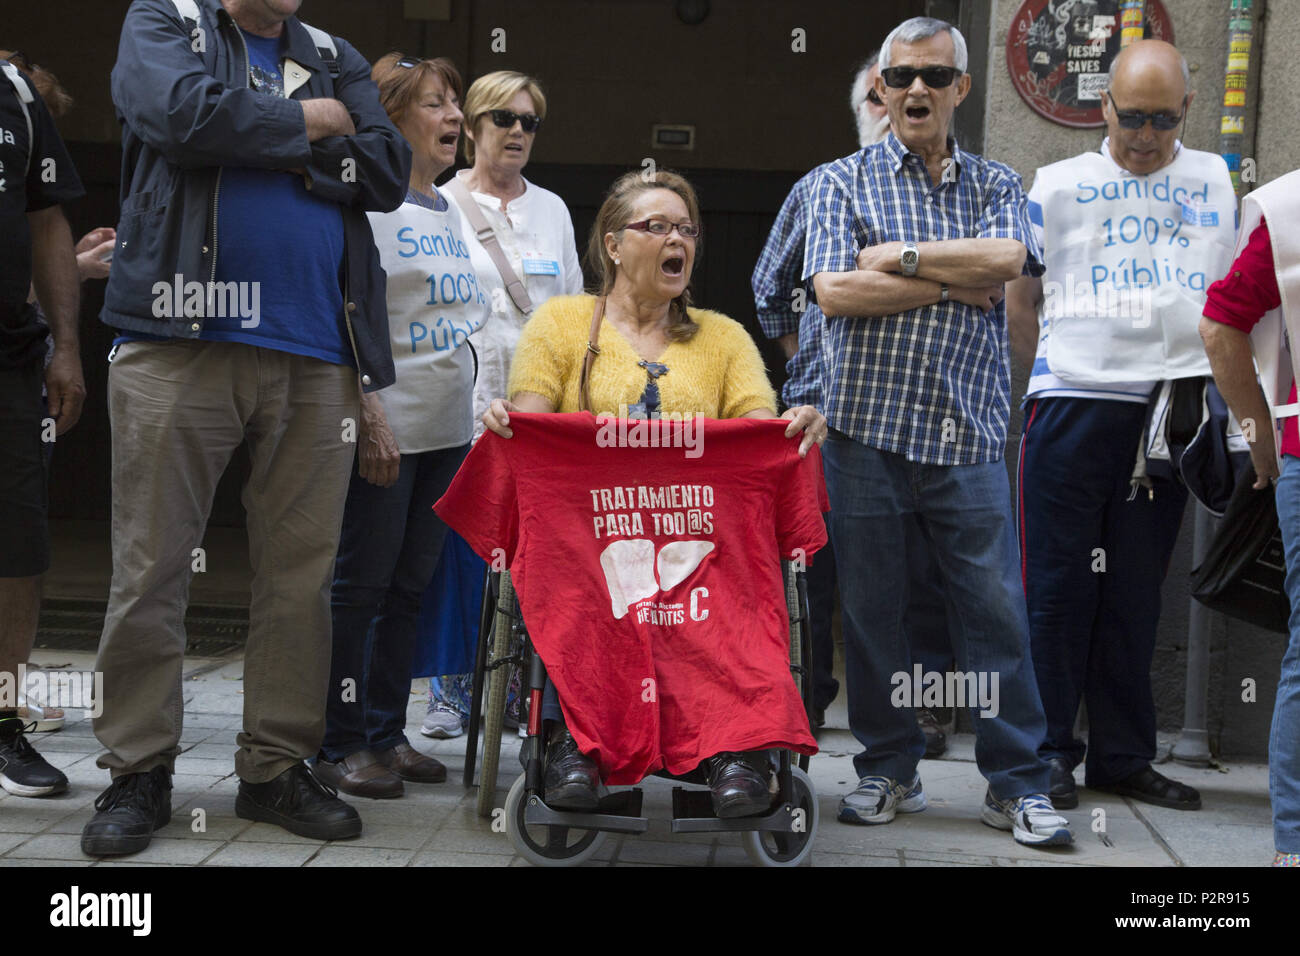 June 14, 2018 - Madrid, Spain - Demonstrators demand sanitary treatments for all..Delivery of 41 000 signatures against waiting lists and referrals from public health to private healthcare. (Credit Image: © Lito Lizana/SOPA Images via ZUMA Wire) - Stock Image